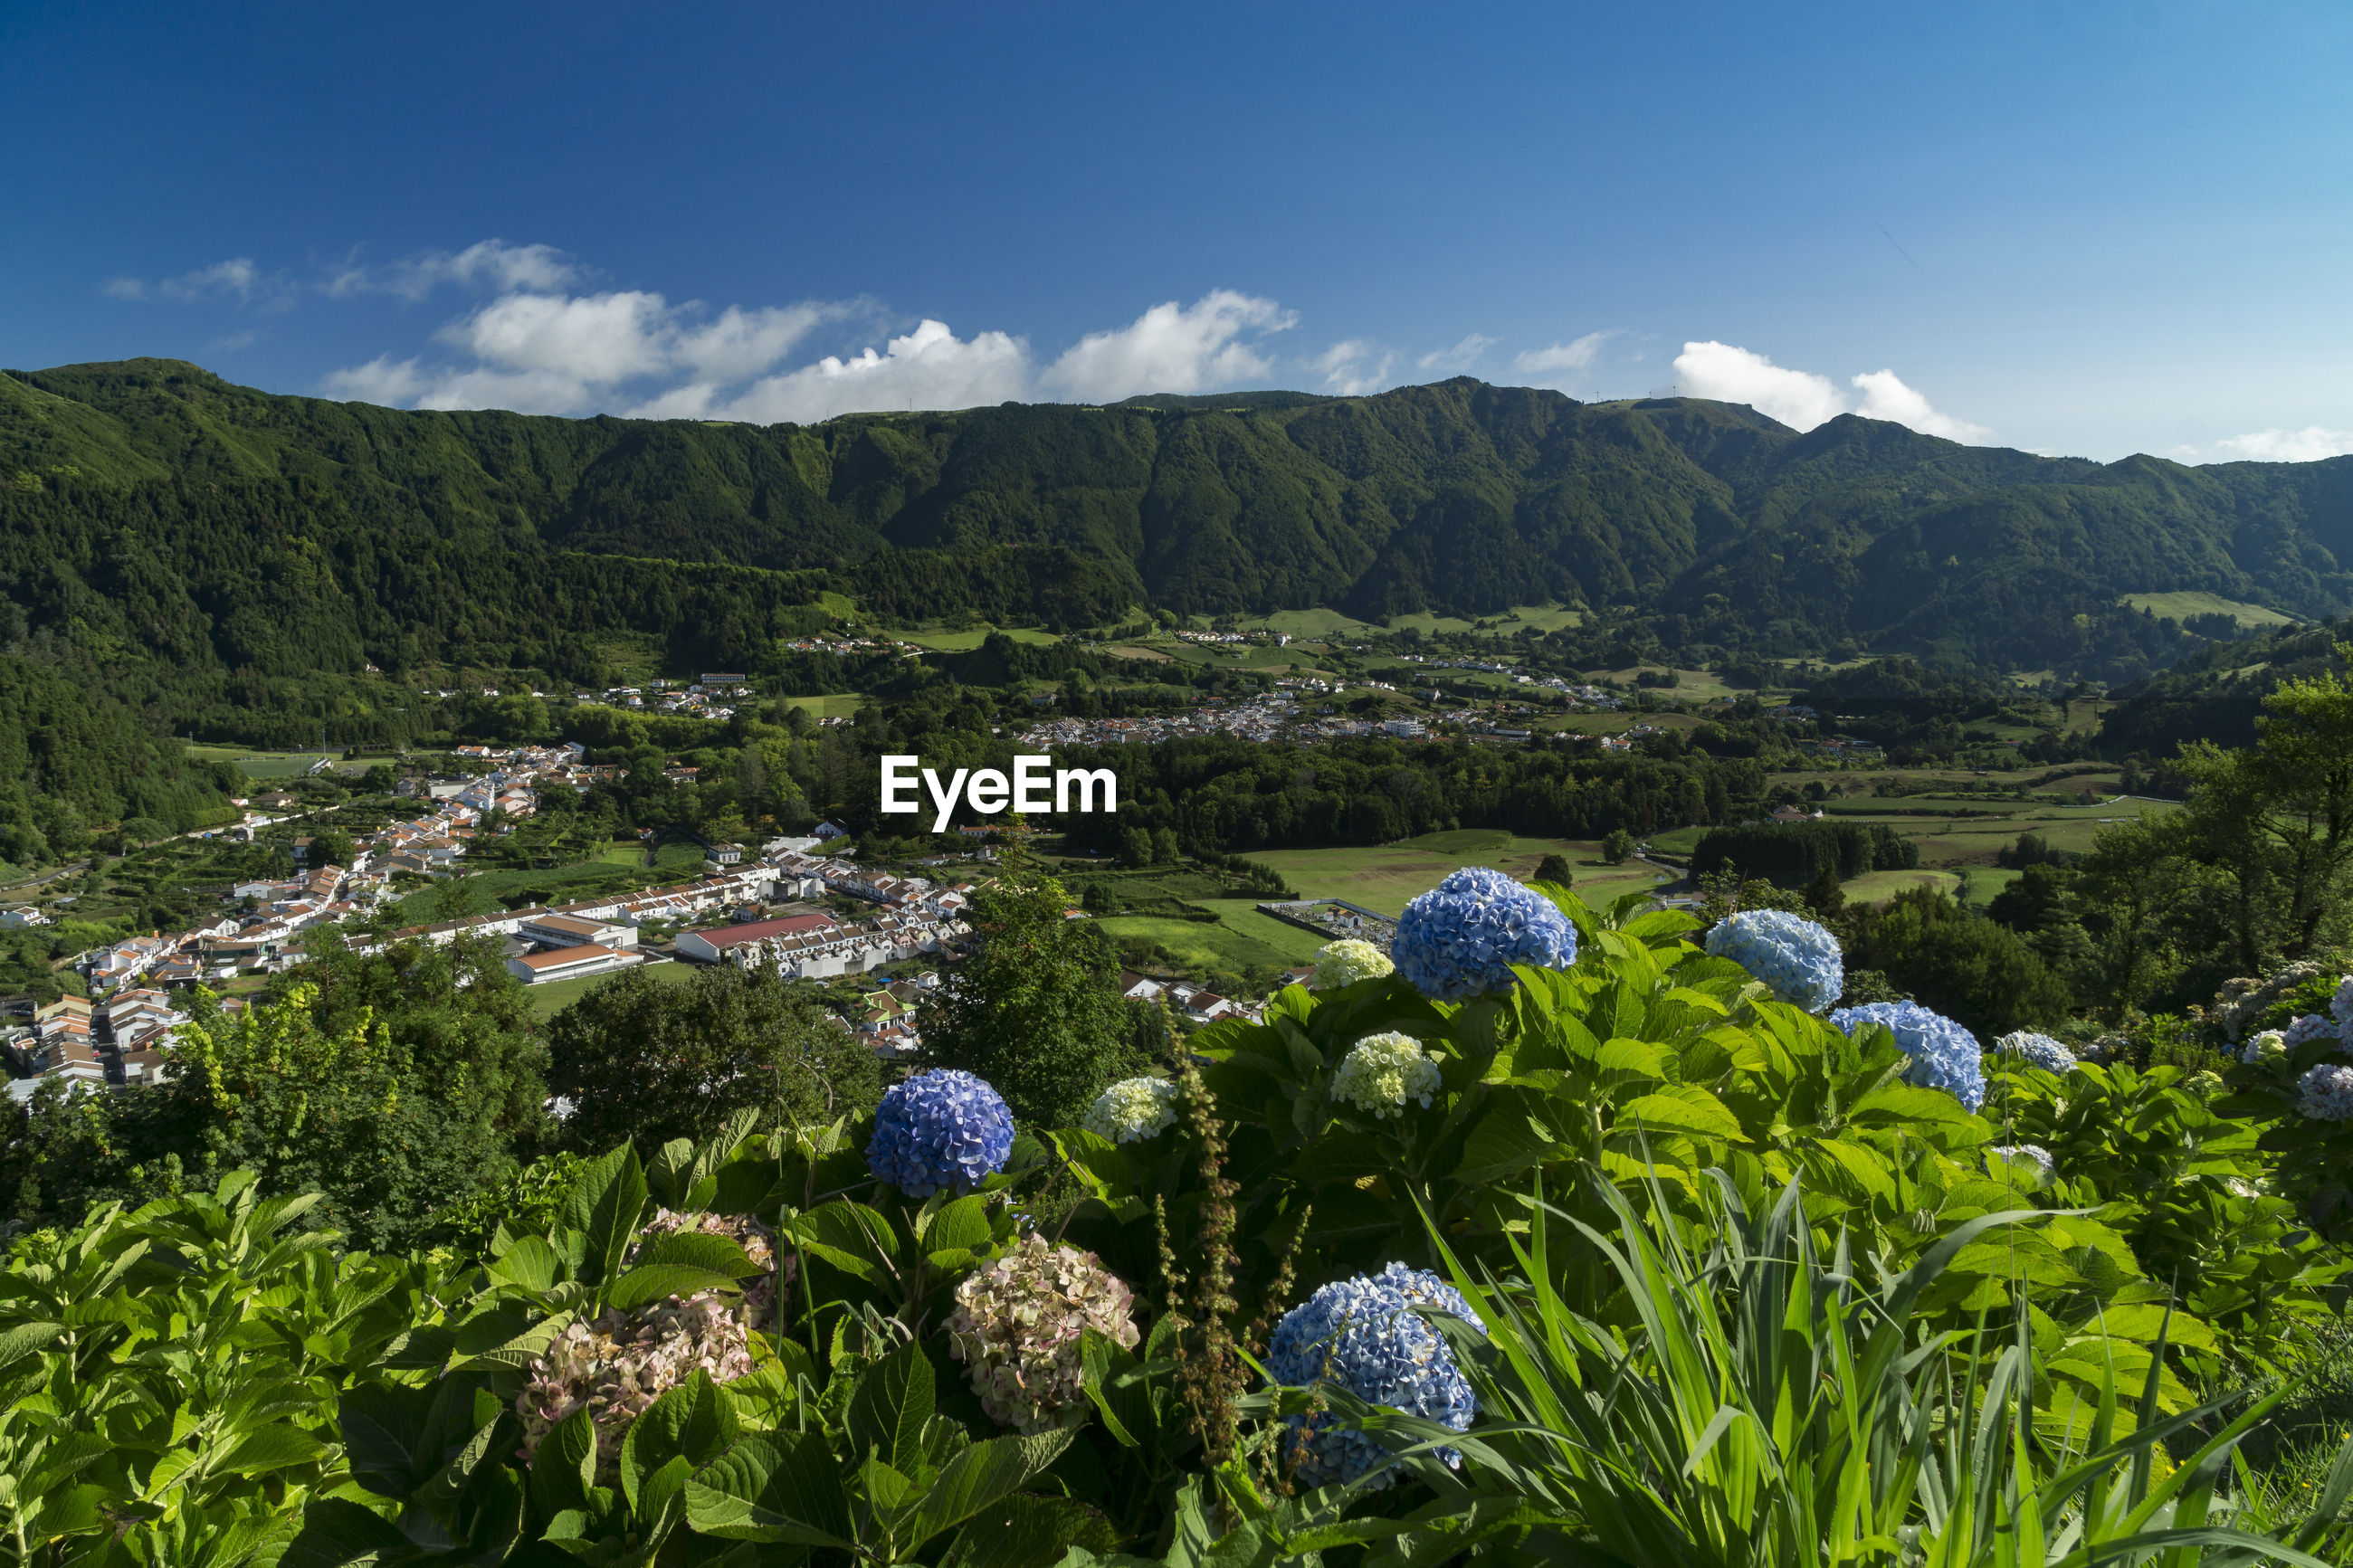 SCENIC VIEW OF FLOWERING PLANTS AGAINST SKY